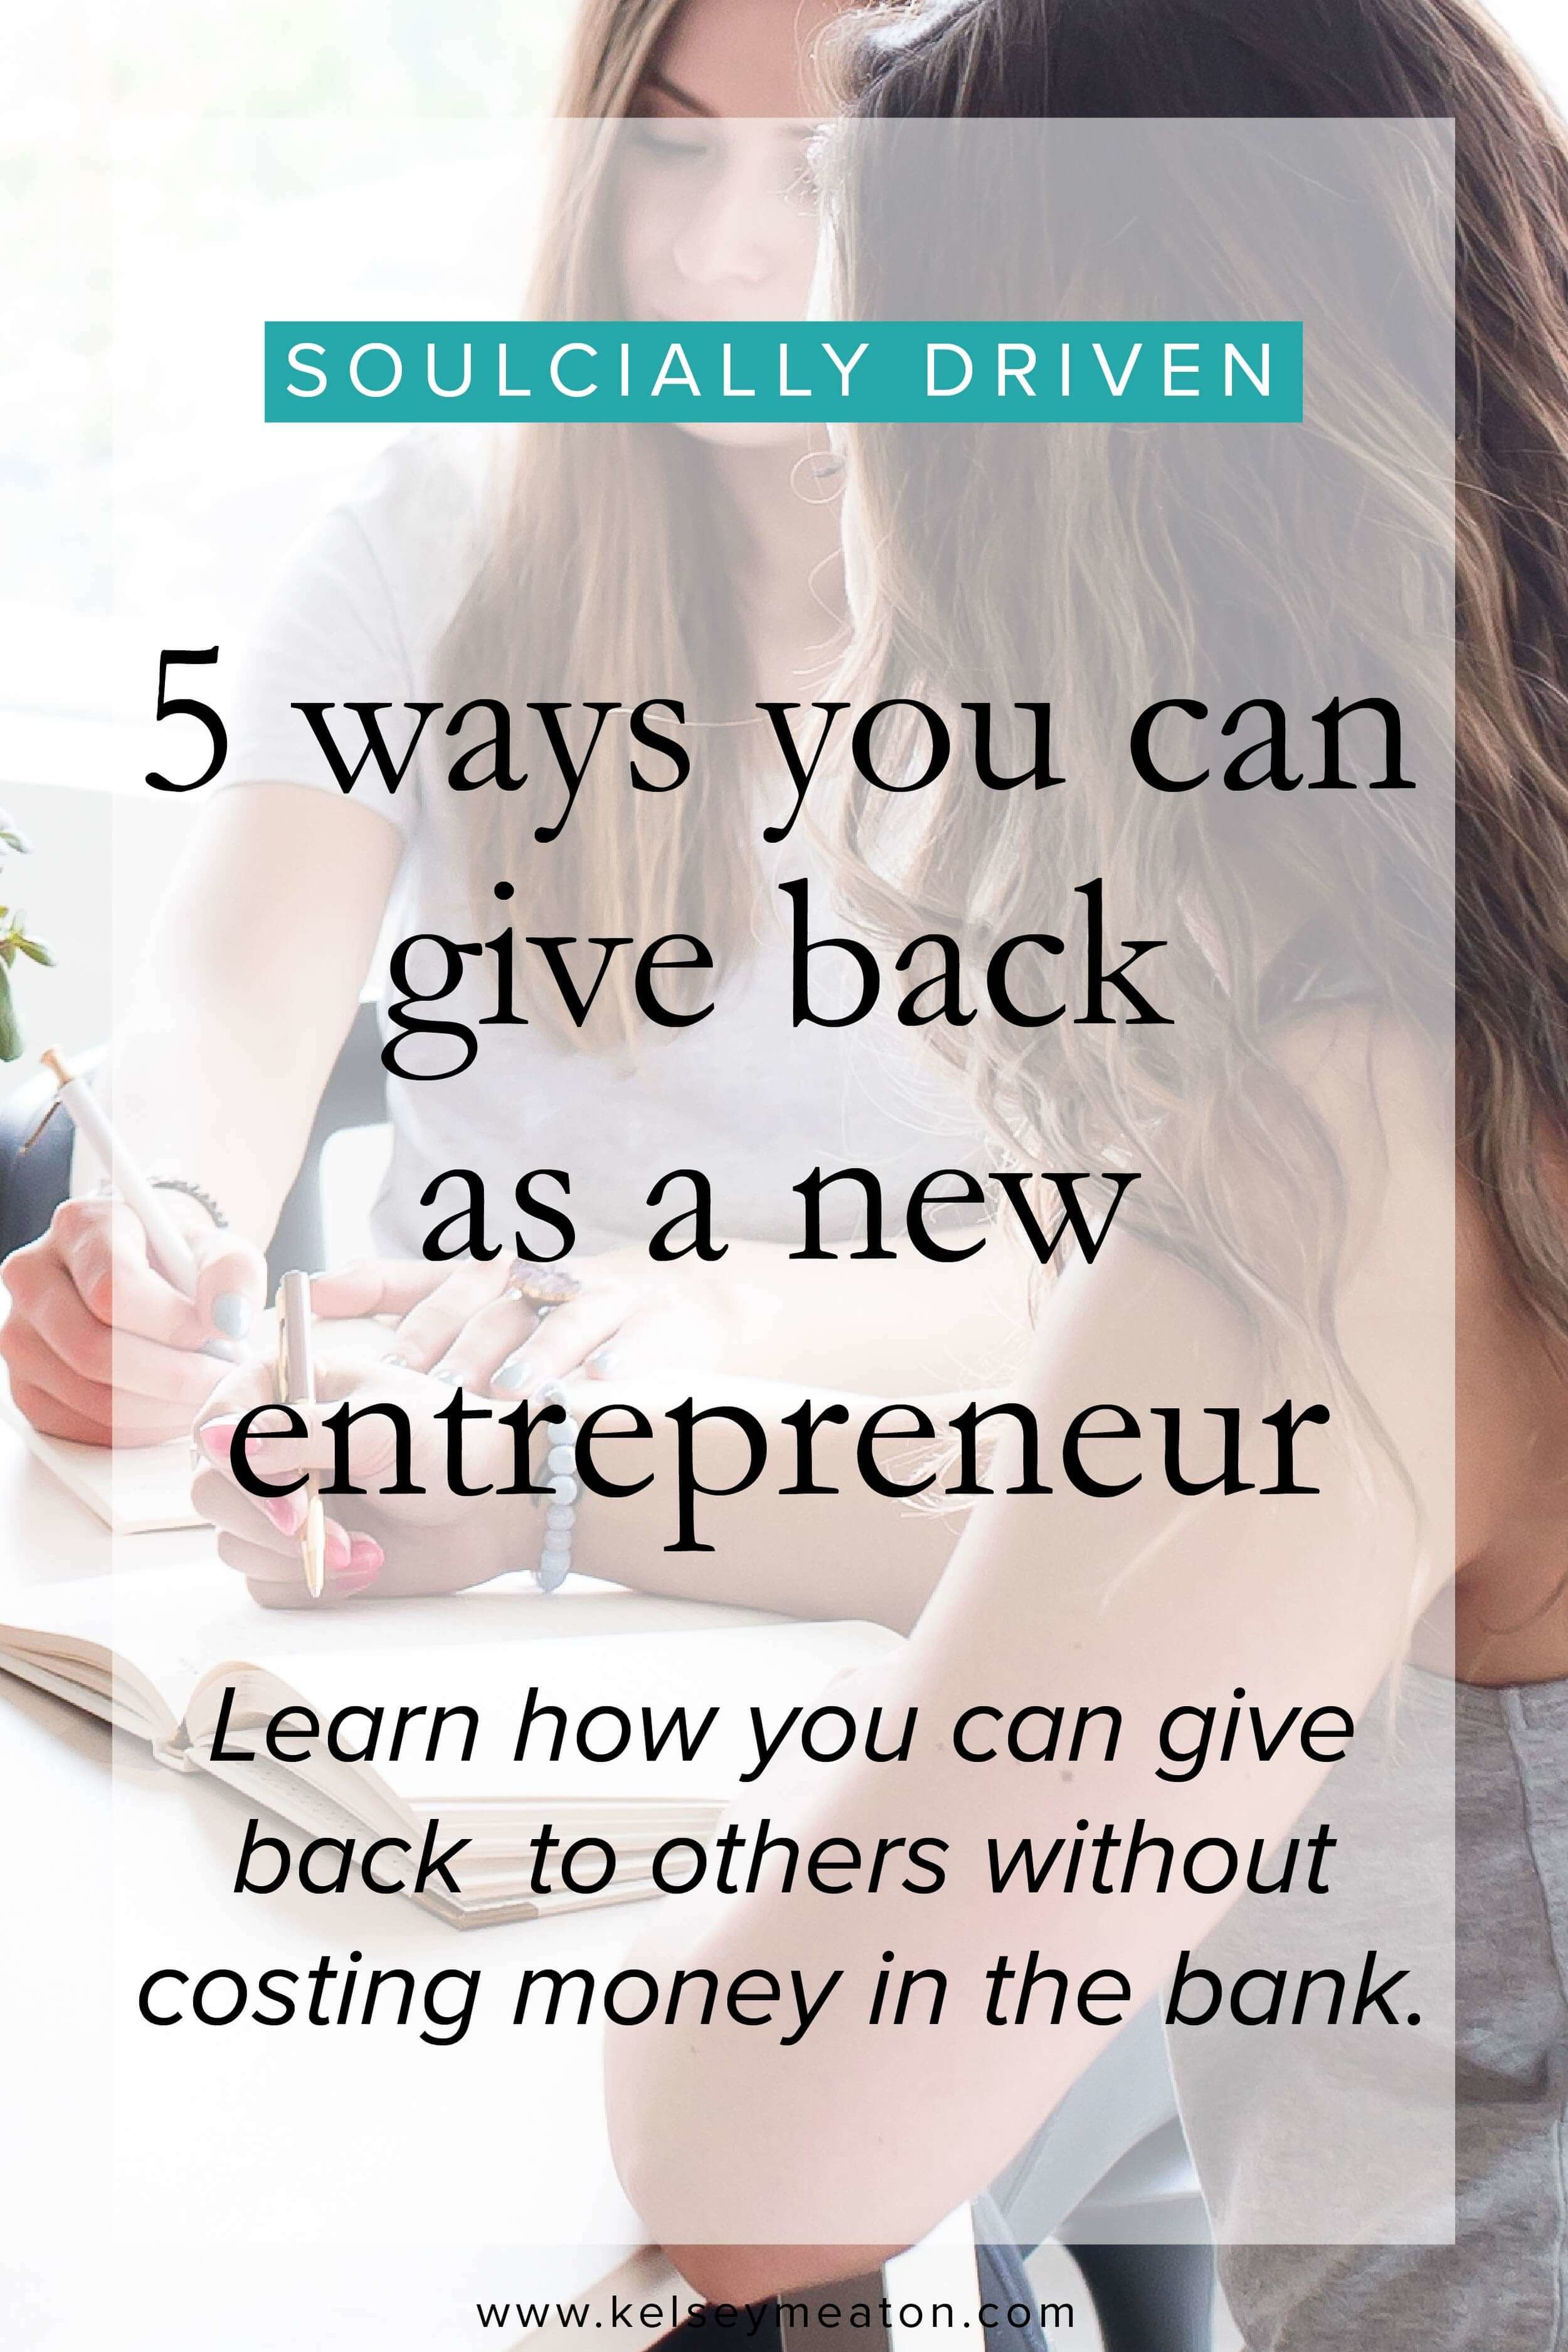 5 ways to give back as an emergingentrepreneur.